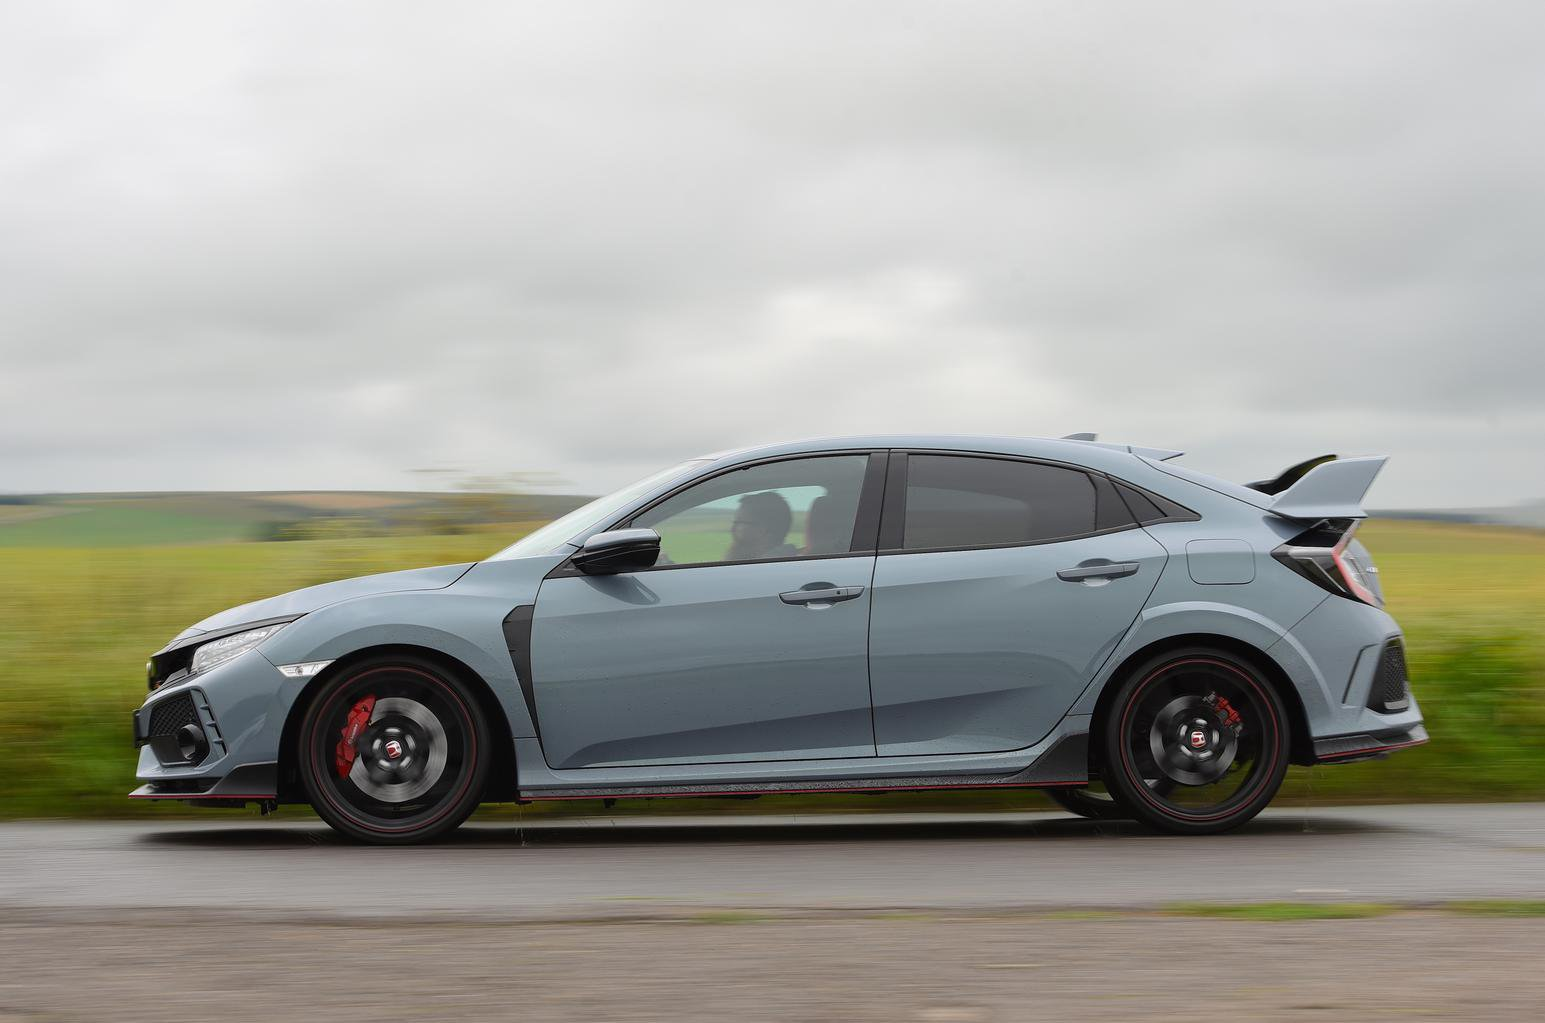 New Honda Civic Type R vs BMW M140i vs Ford Focus RS